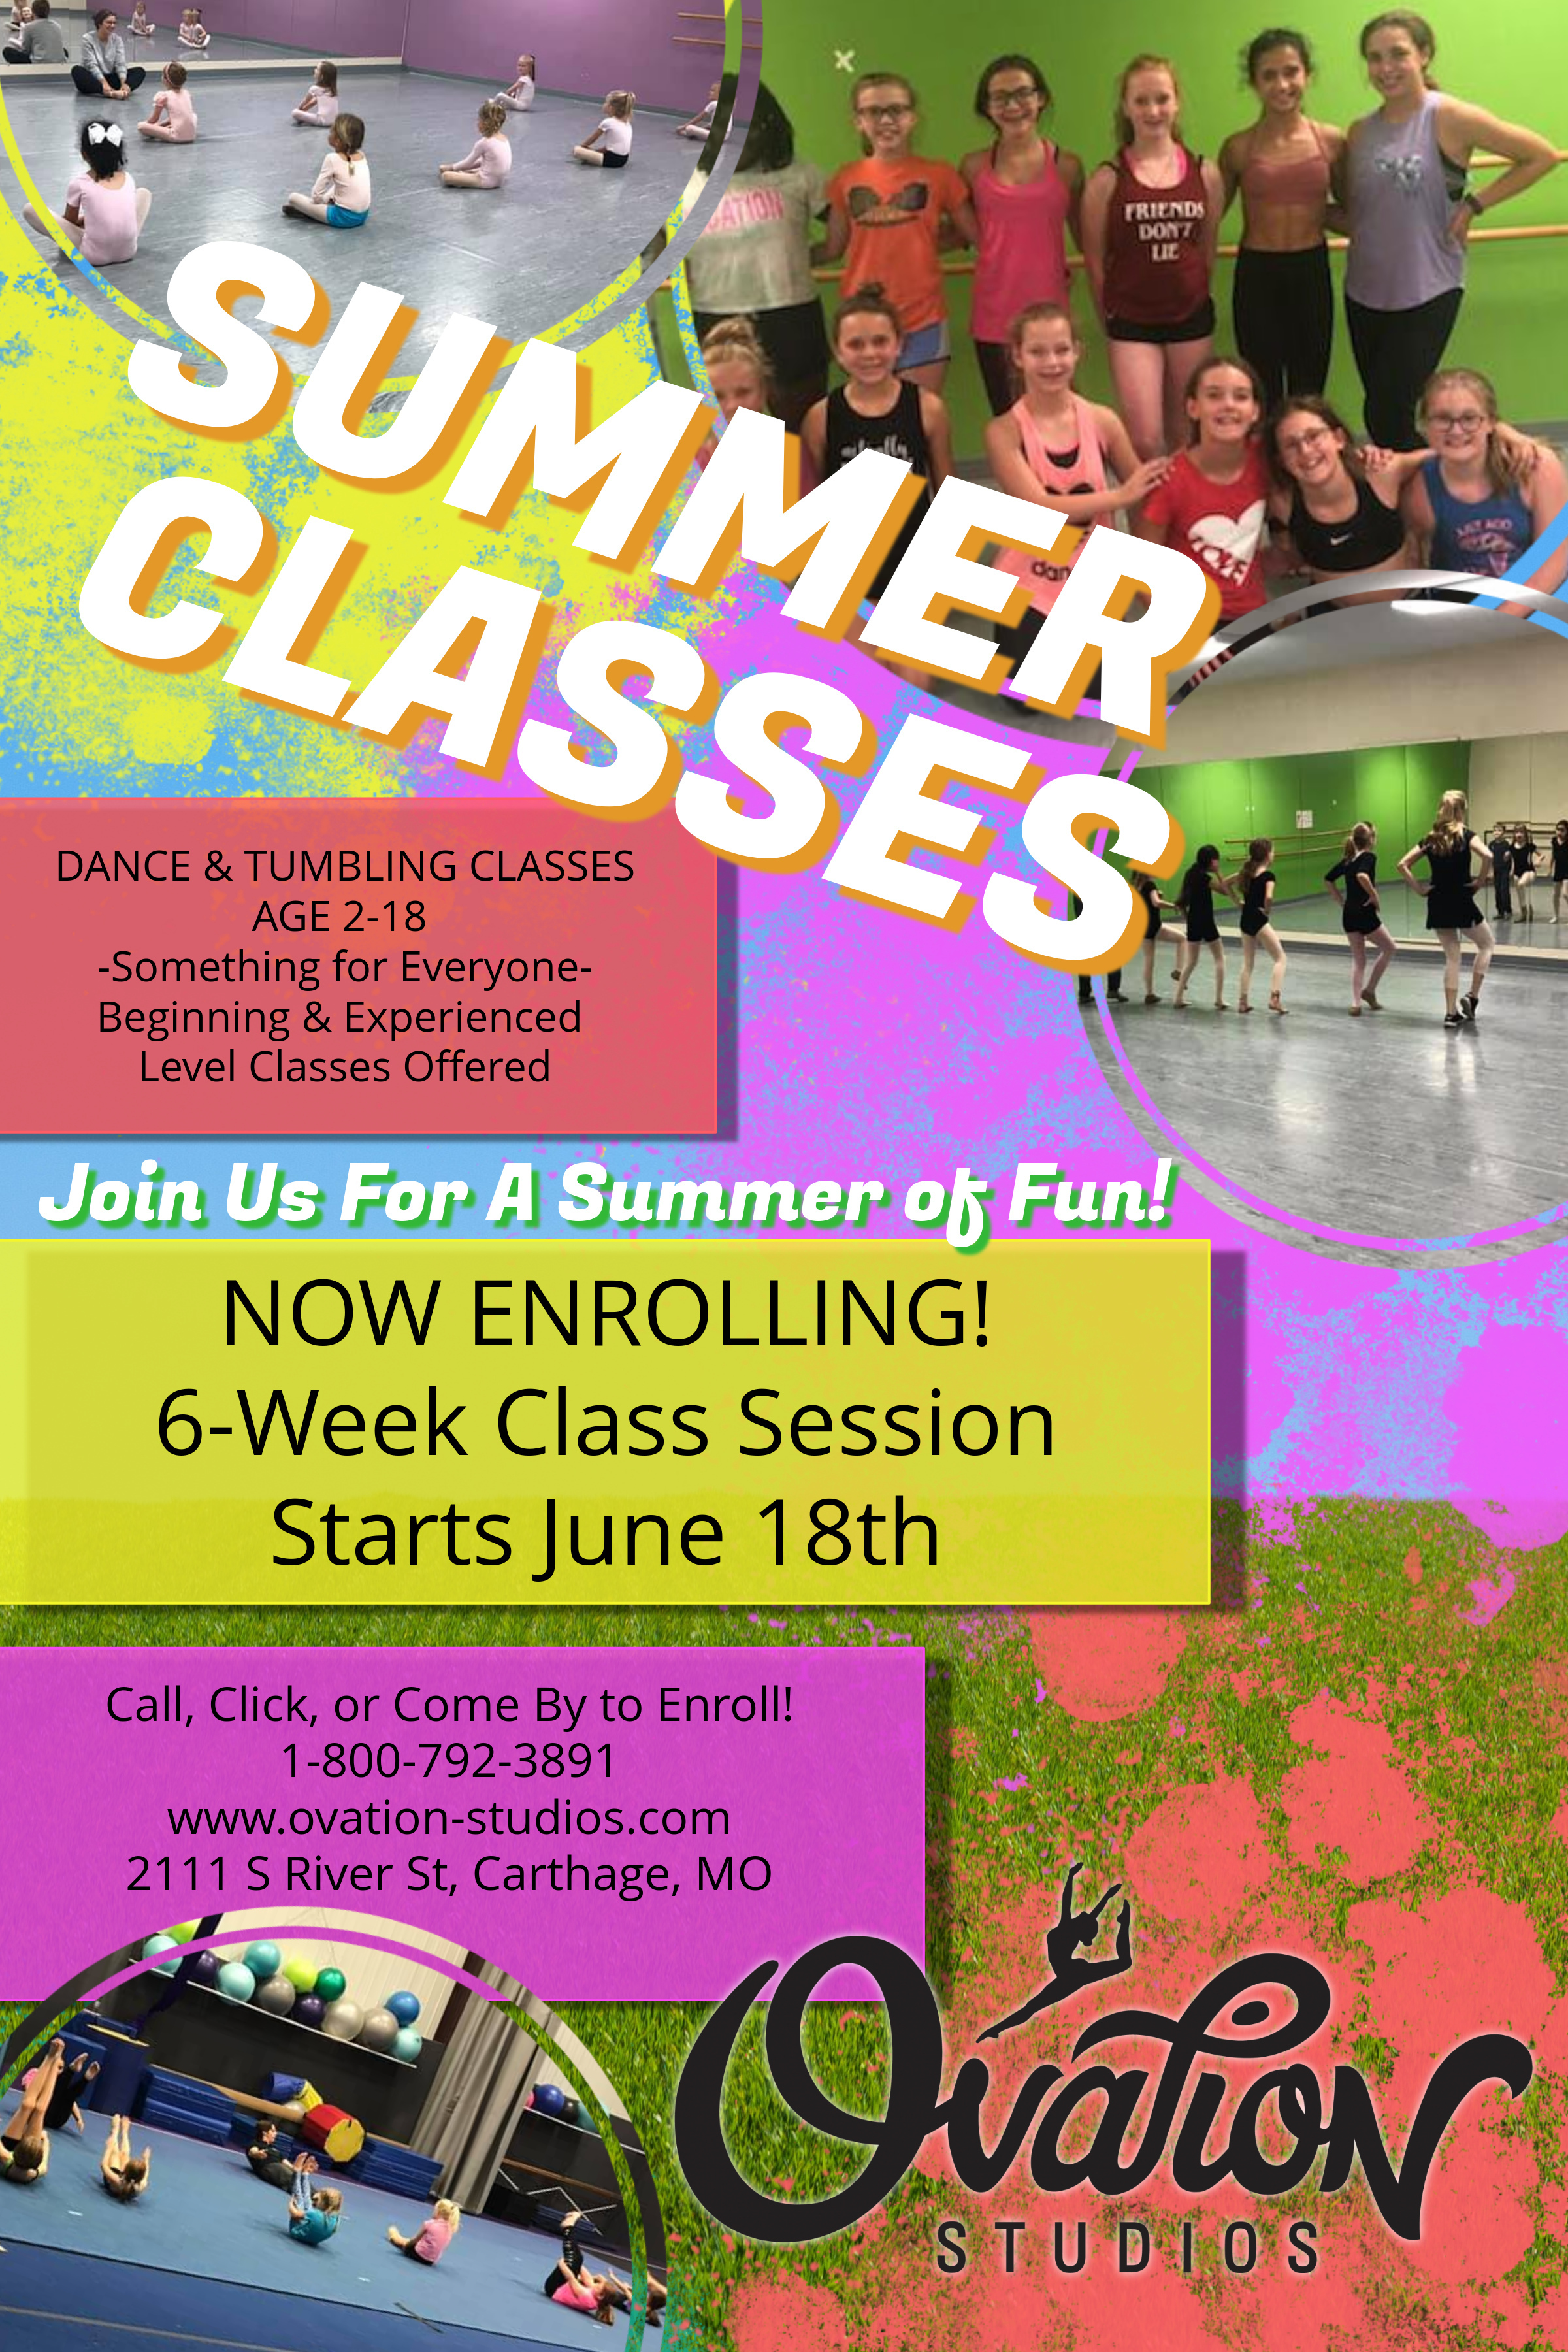 Now Enrolling for Summer Classes!